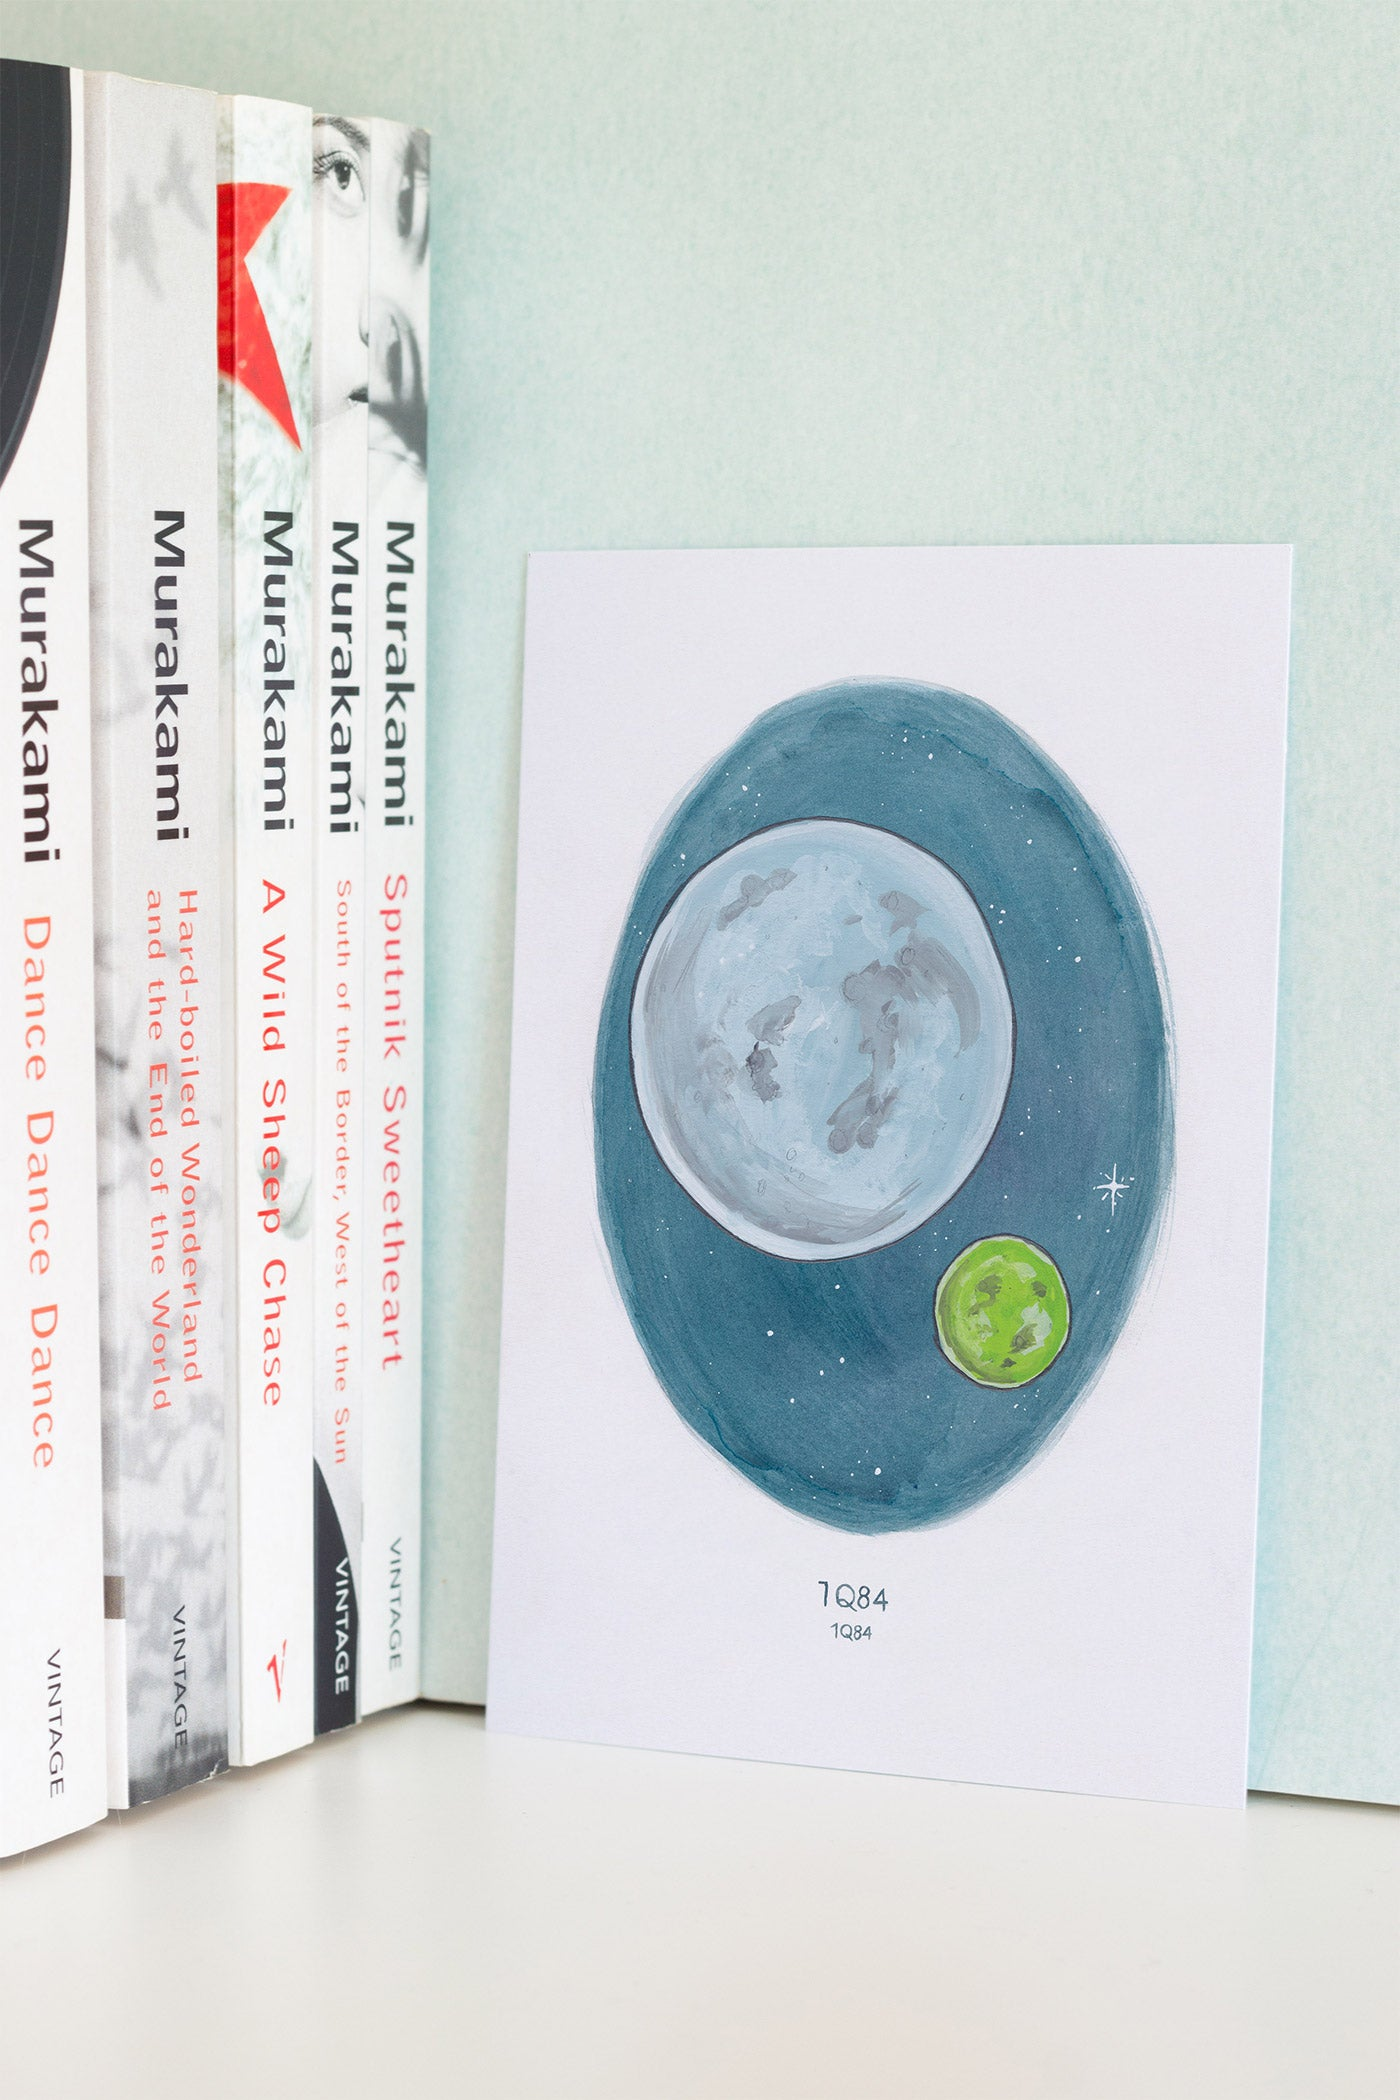 Haruki Murakami's 1Q84 A6 Watercolour Novel Illustration